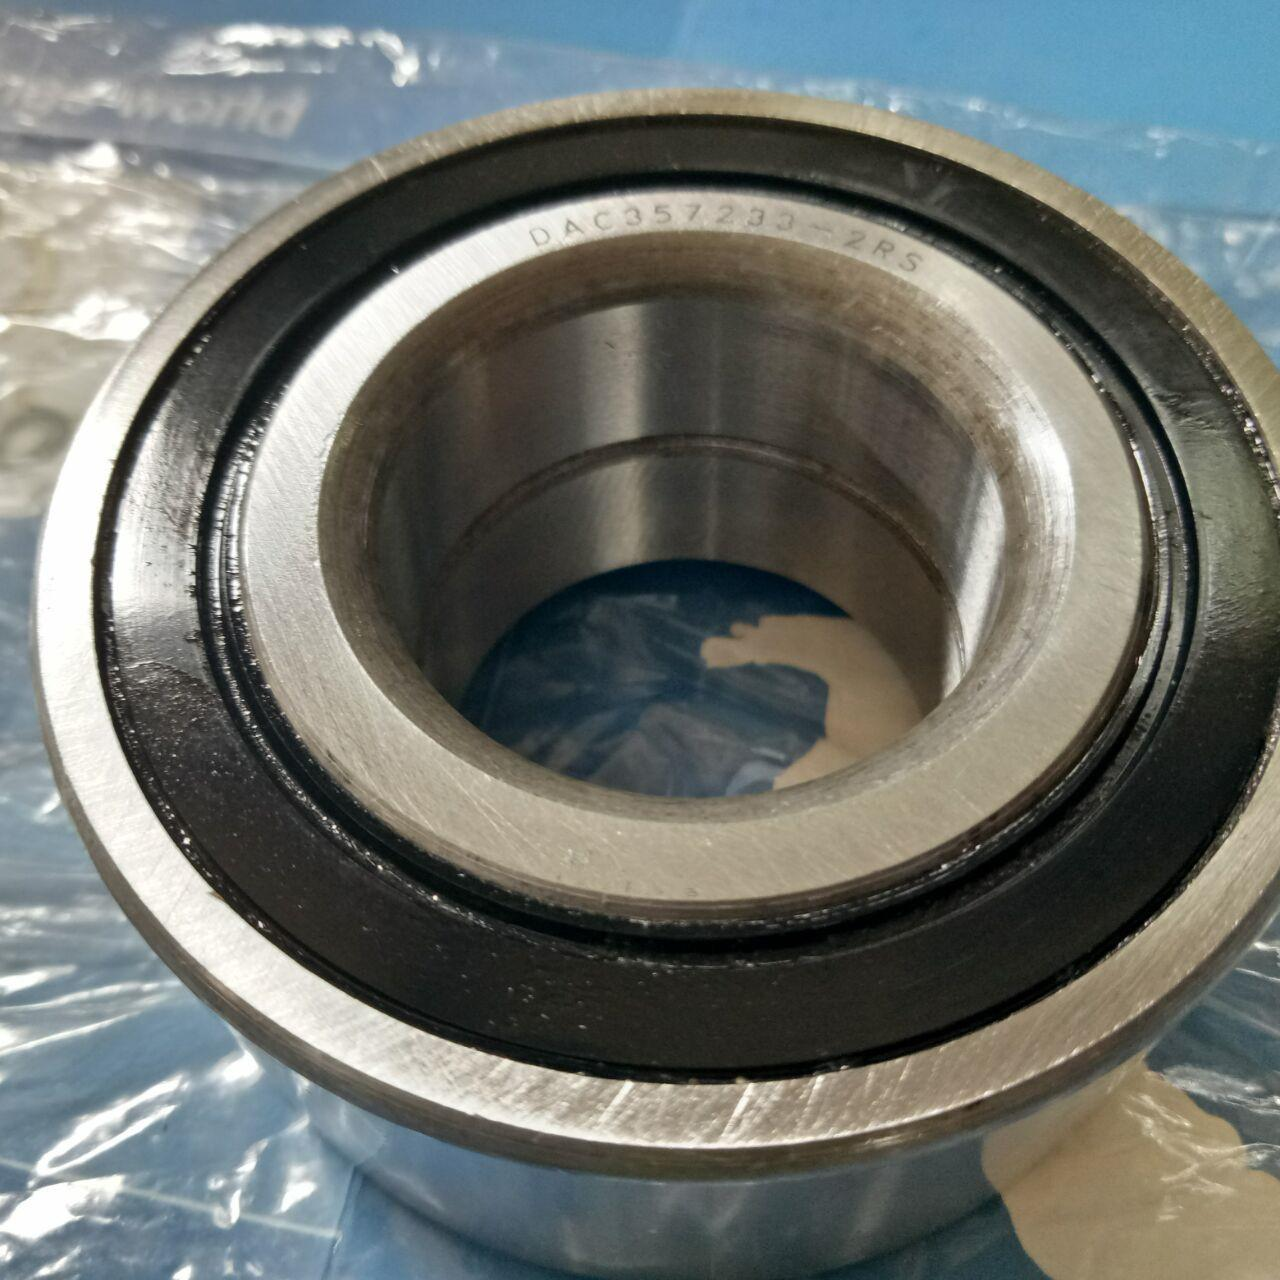 Hub bearing /wheel bearing DAC357233-2RS  Size:35*68*30mm made by China bearing factory Manufactures